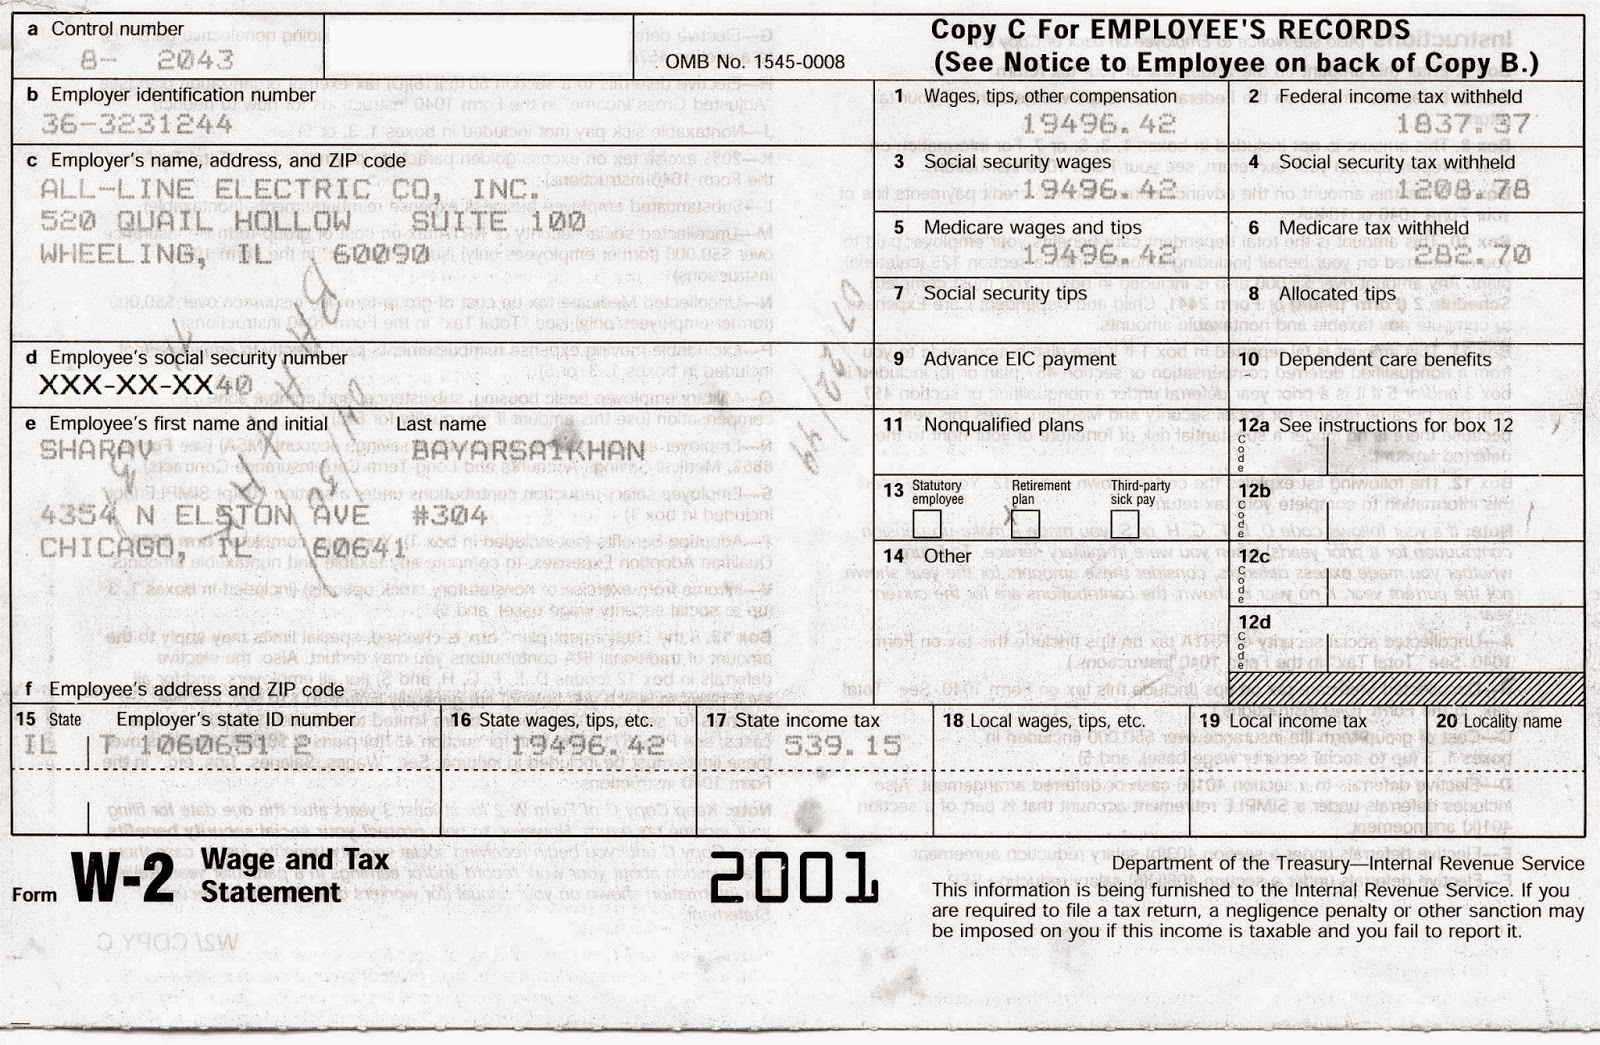 electric work  w-2 form u0026 39 s 1998